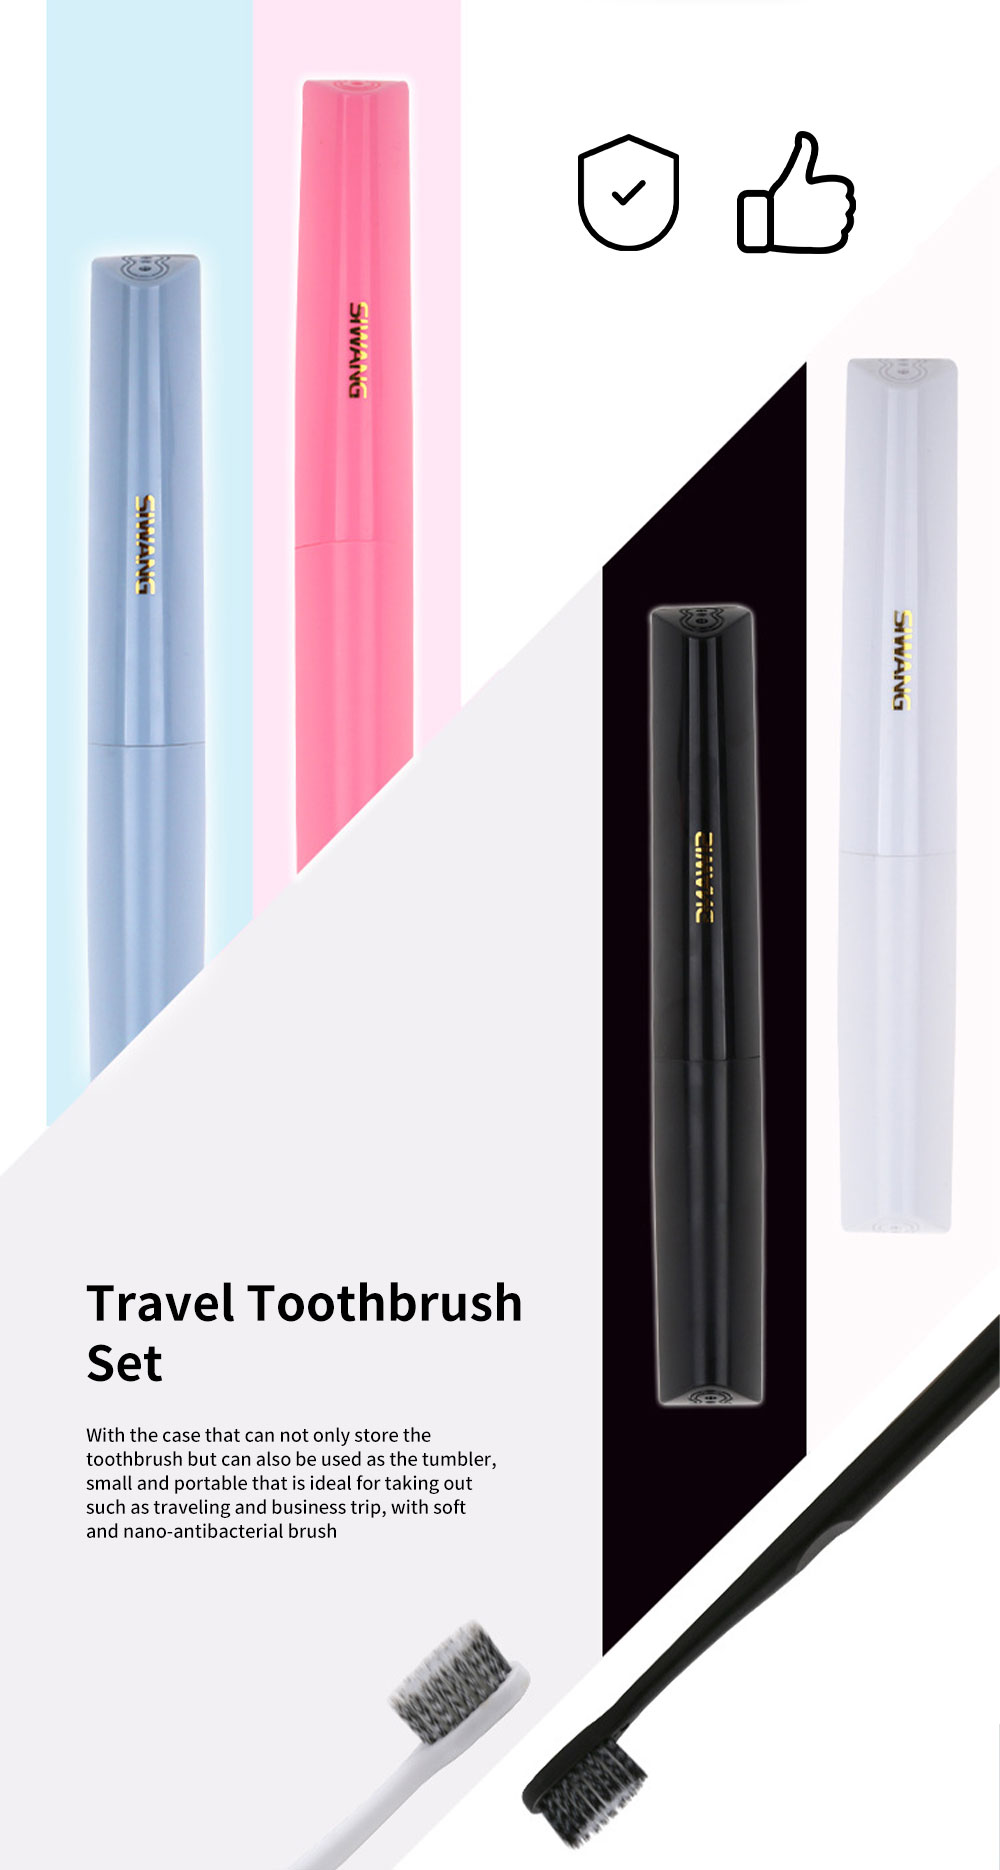 Soft Toothbrush Set, Toothbrush with Storage Case Ideal for Traveling Business Trip, Portable Deep Teeth Cleanser for Adults Couple 0